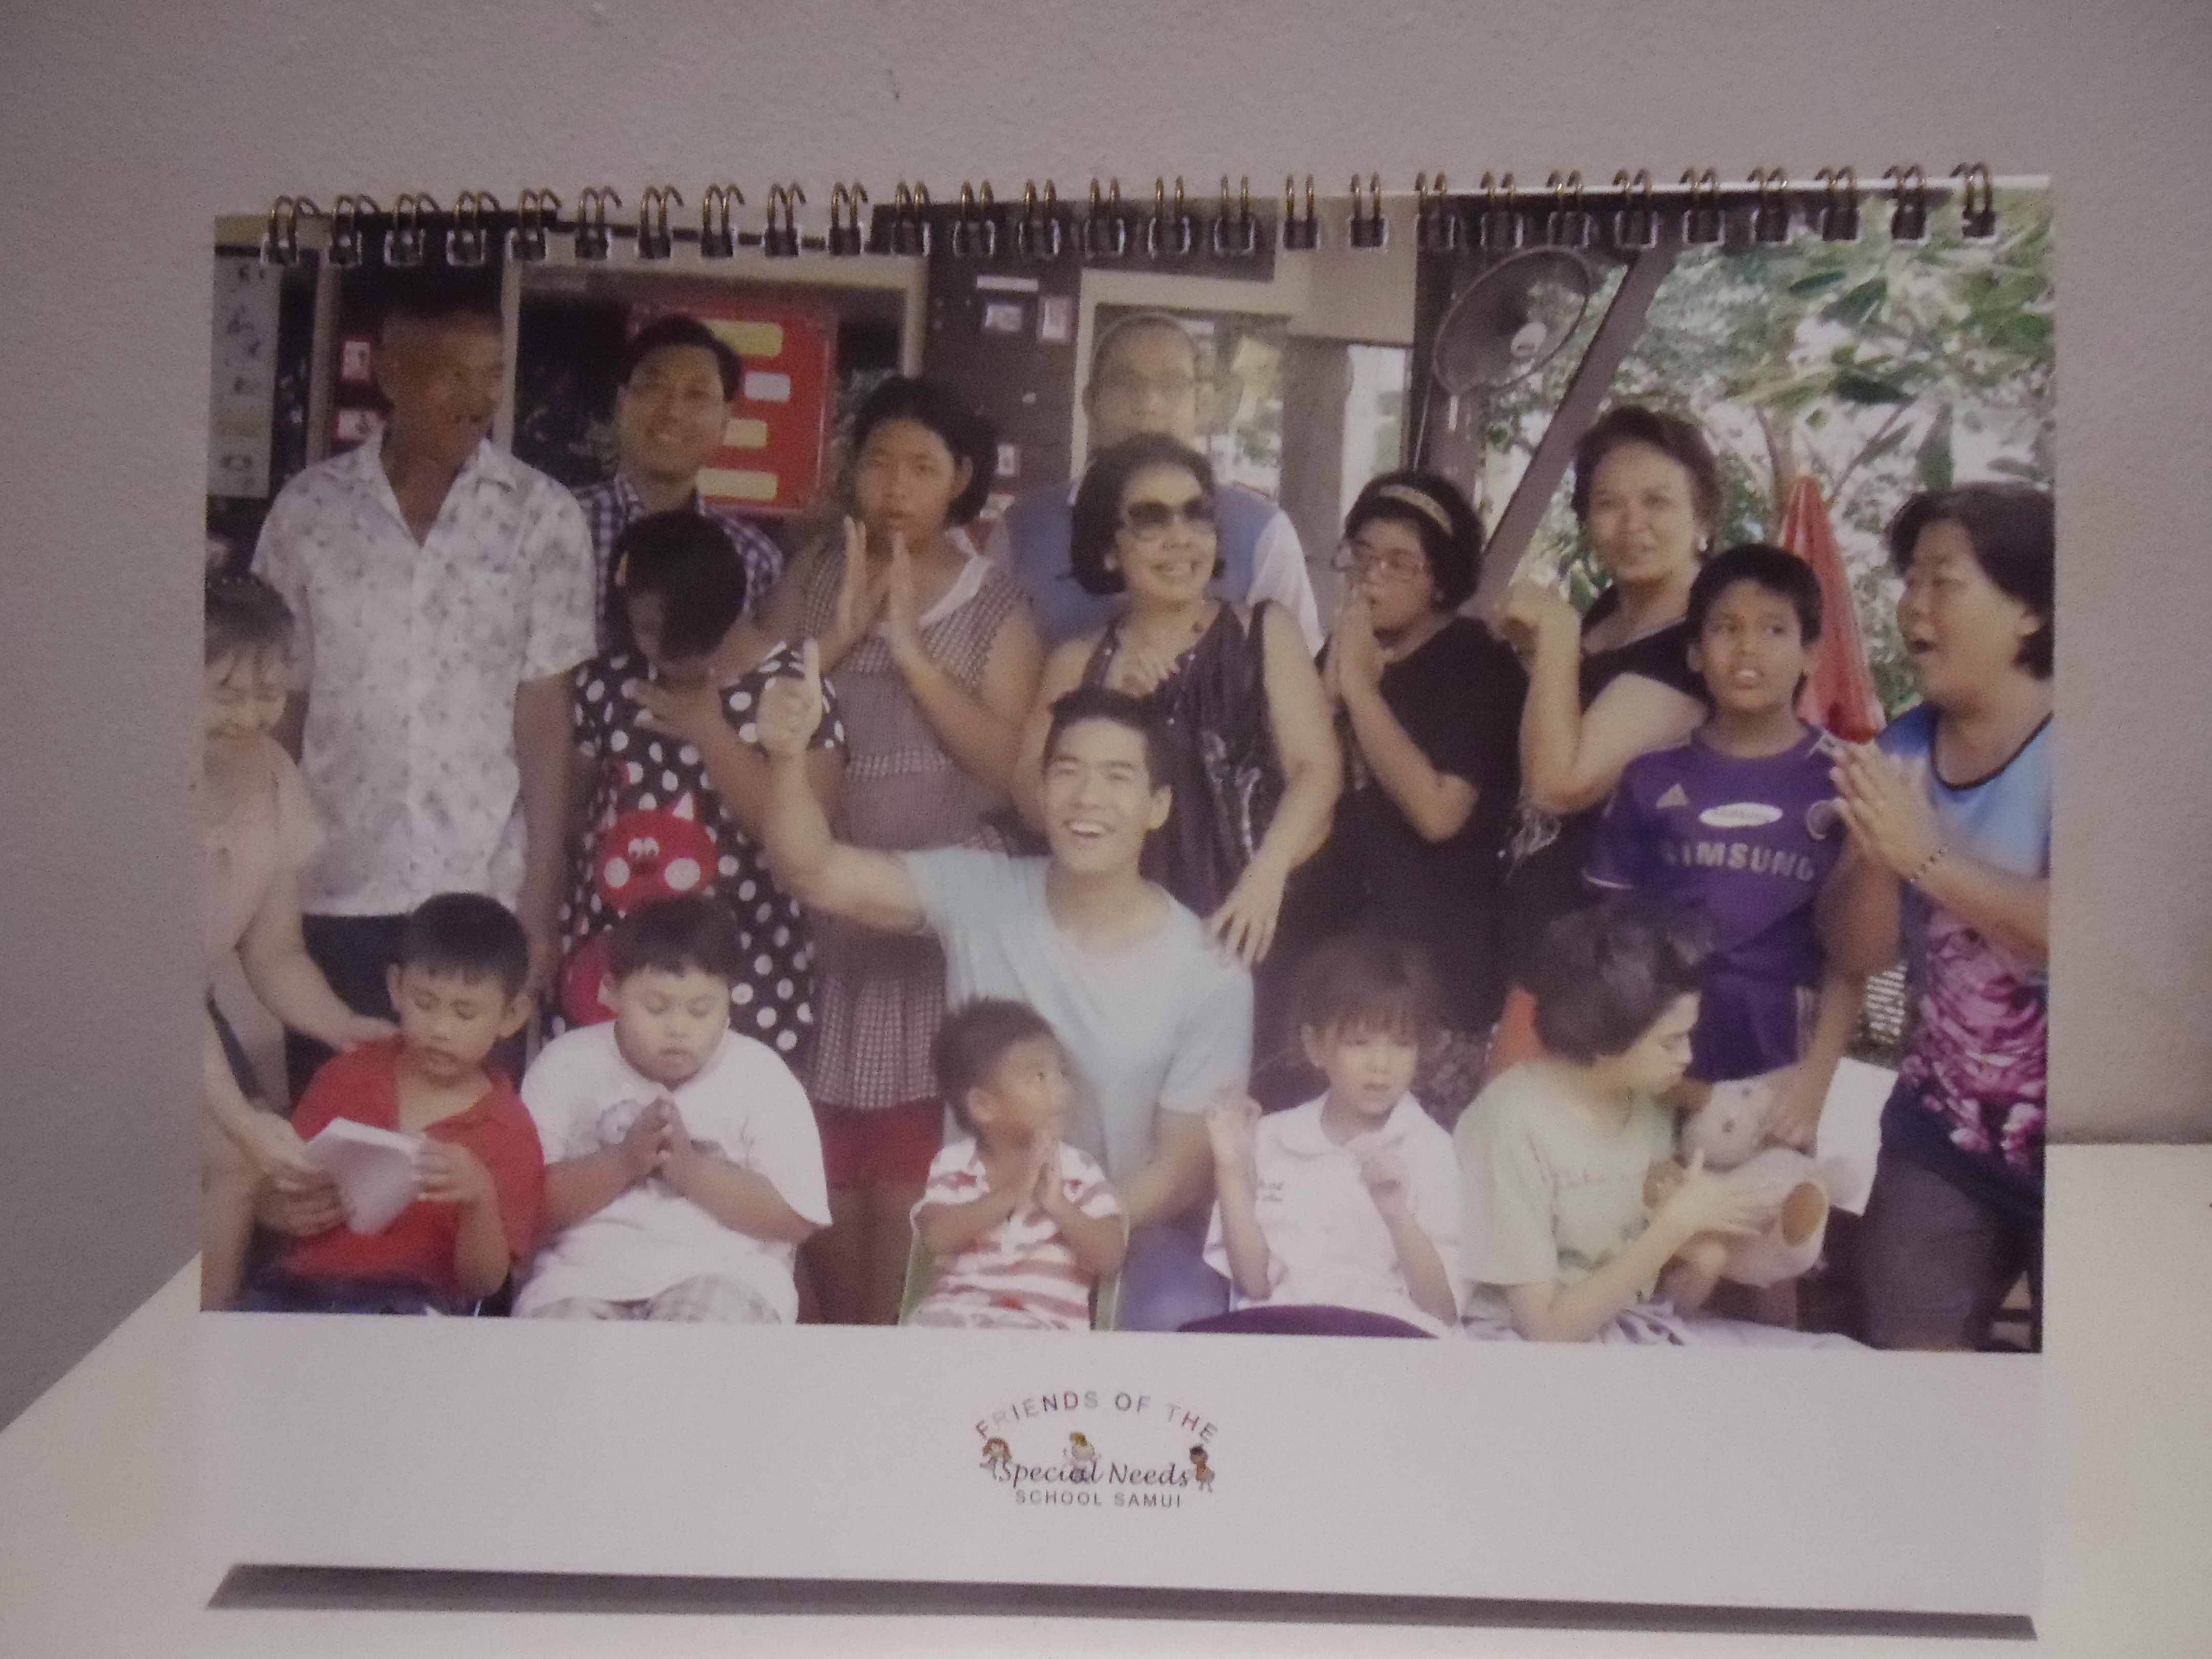 Friends of the Special Needs School 2014 Calendars now on sale | Samui Times